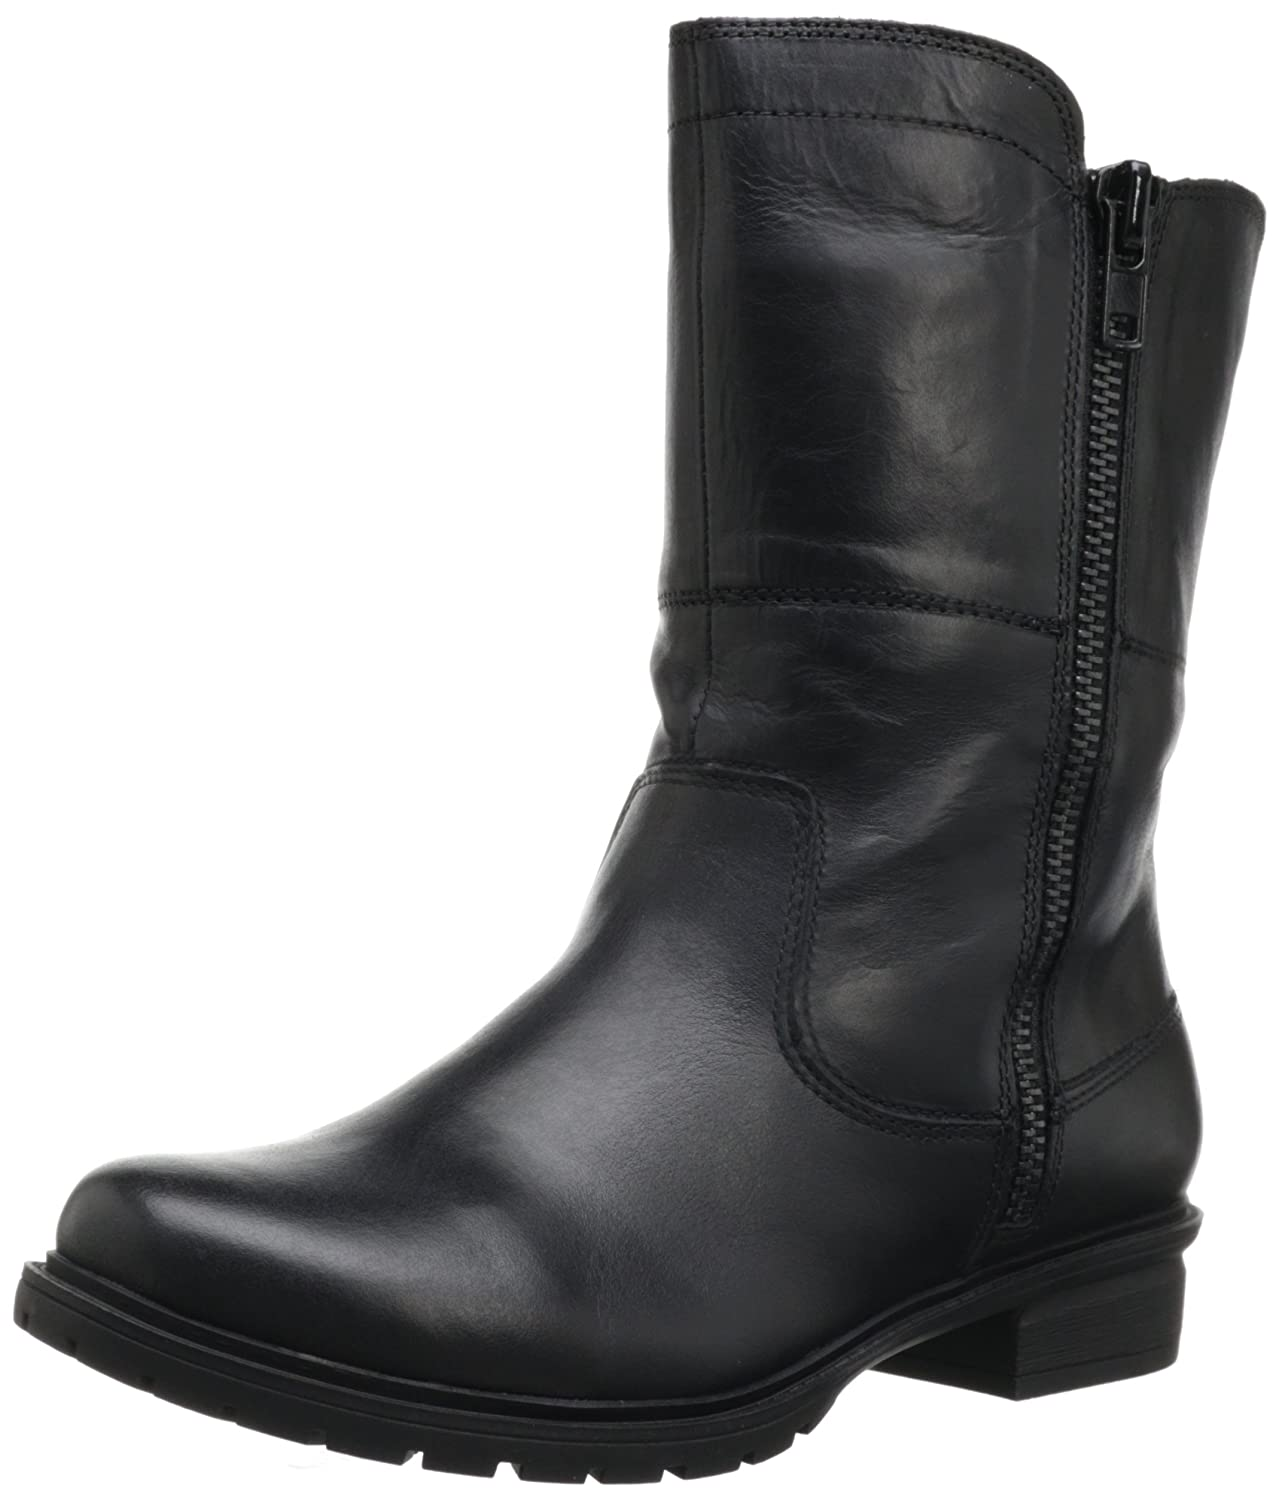 Kenneth Cole REACTION Womens Steady CLO Bootie